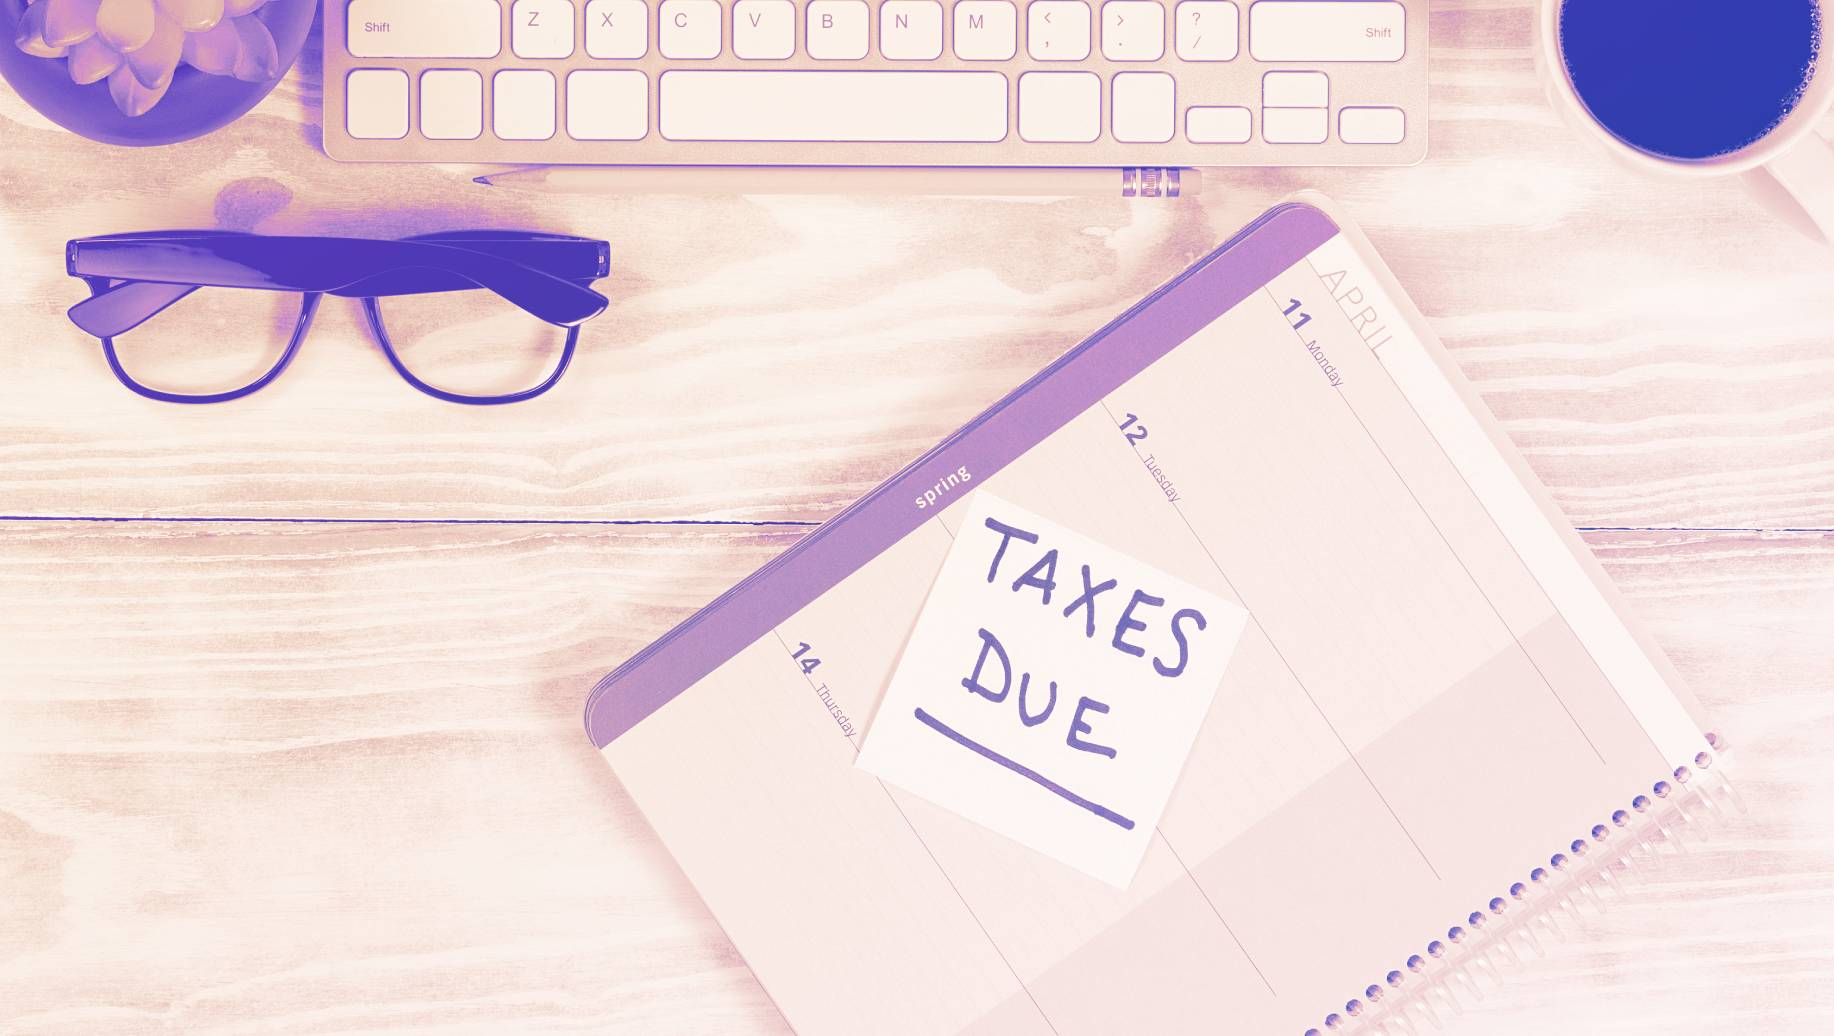 5 Questions To Ask Before Selecting Tax Deadline Tracking Software | CrowdReason